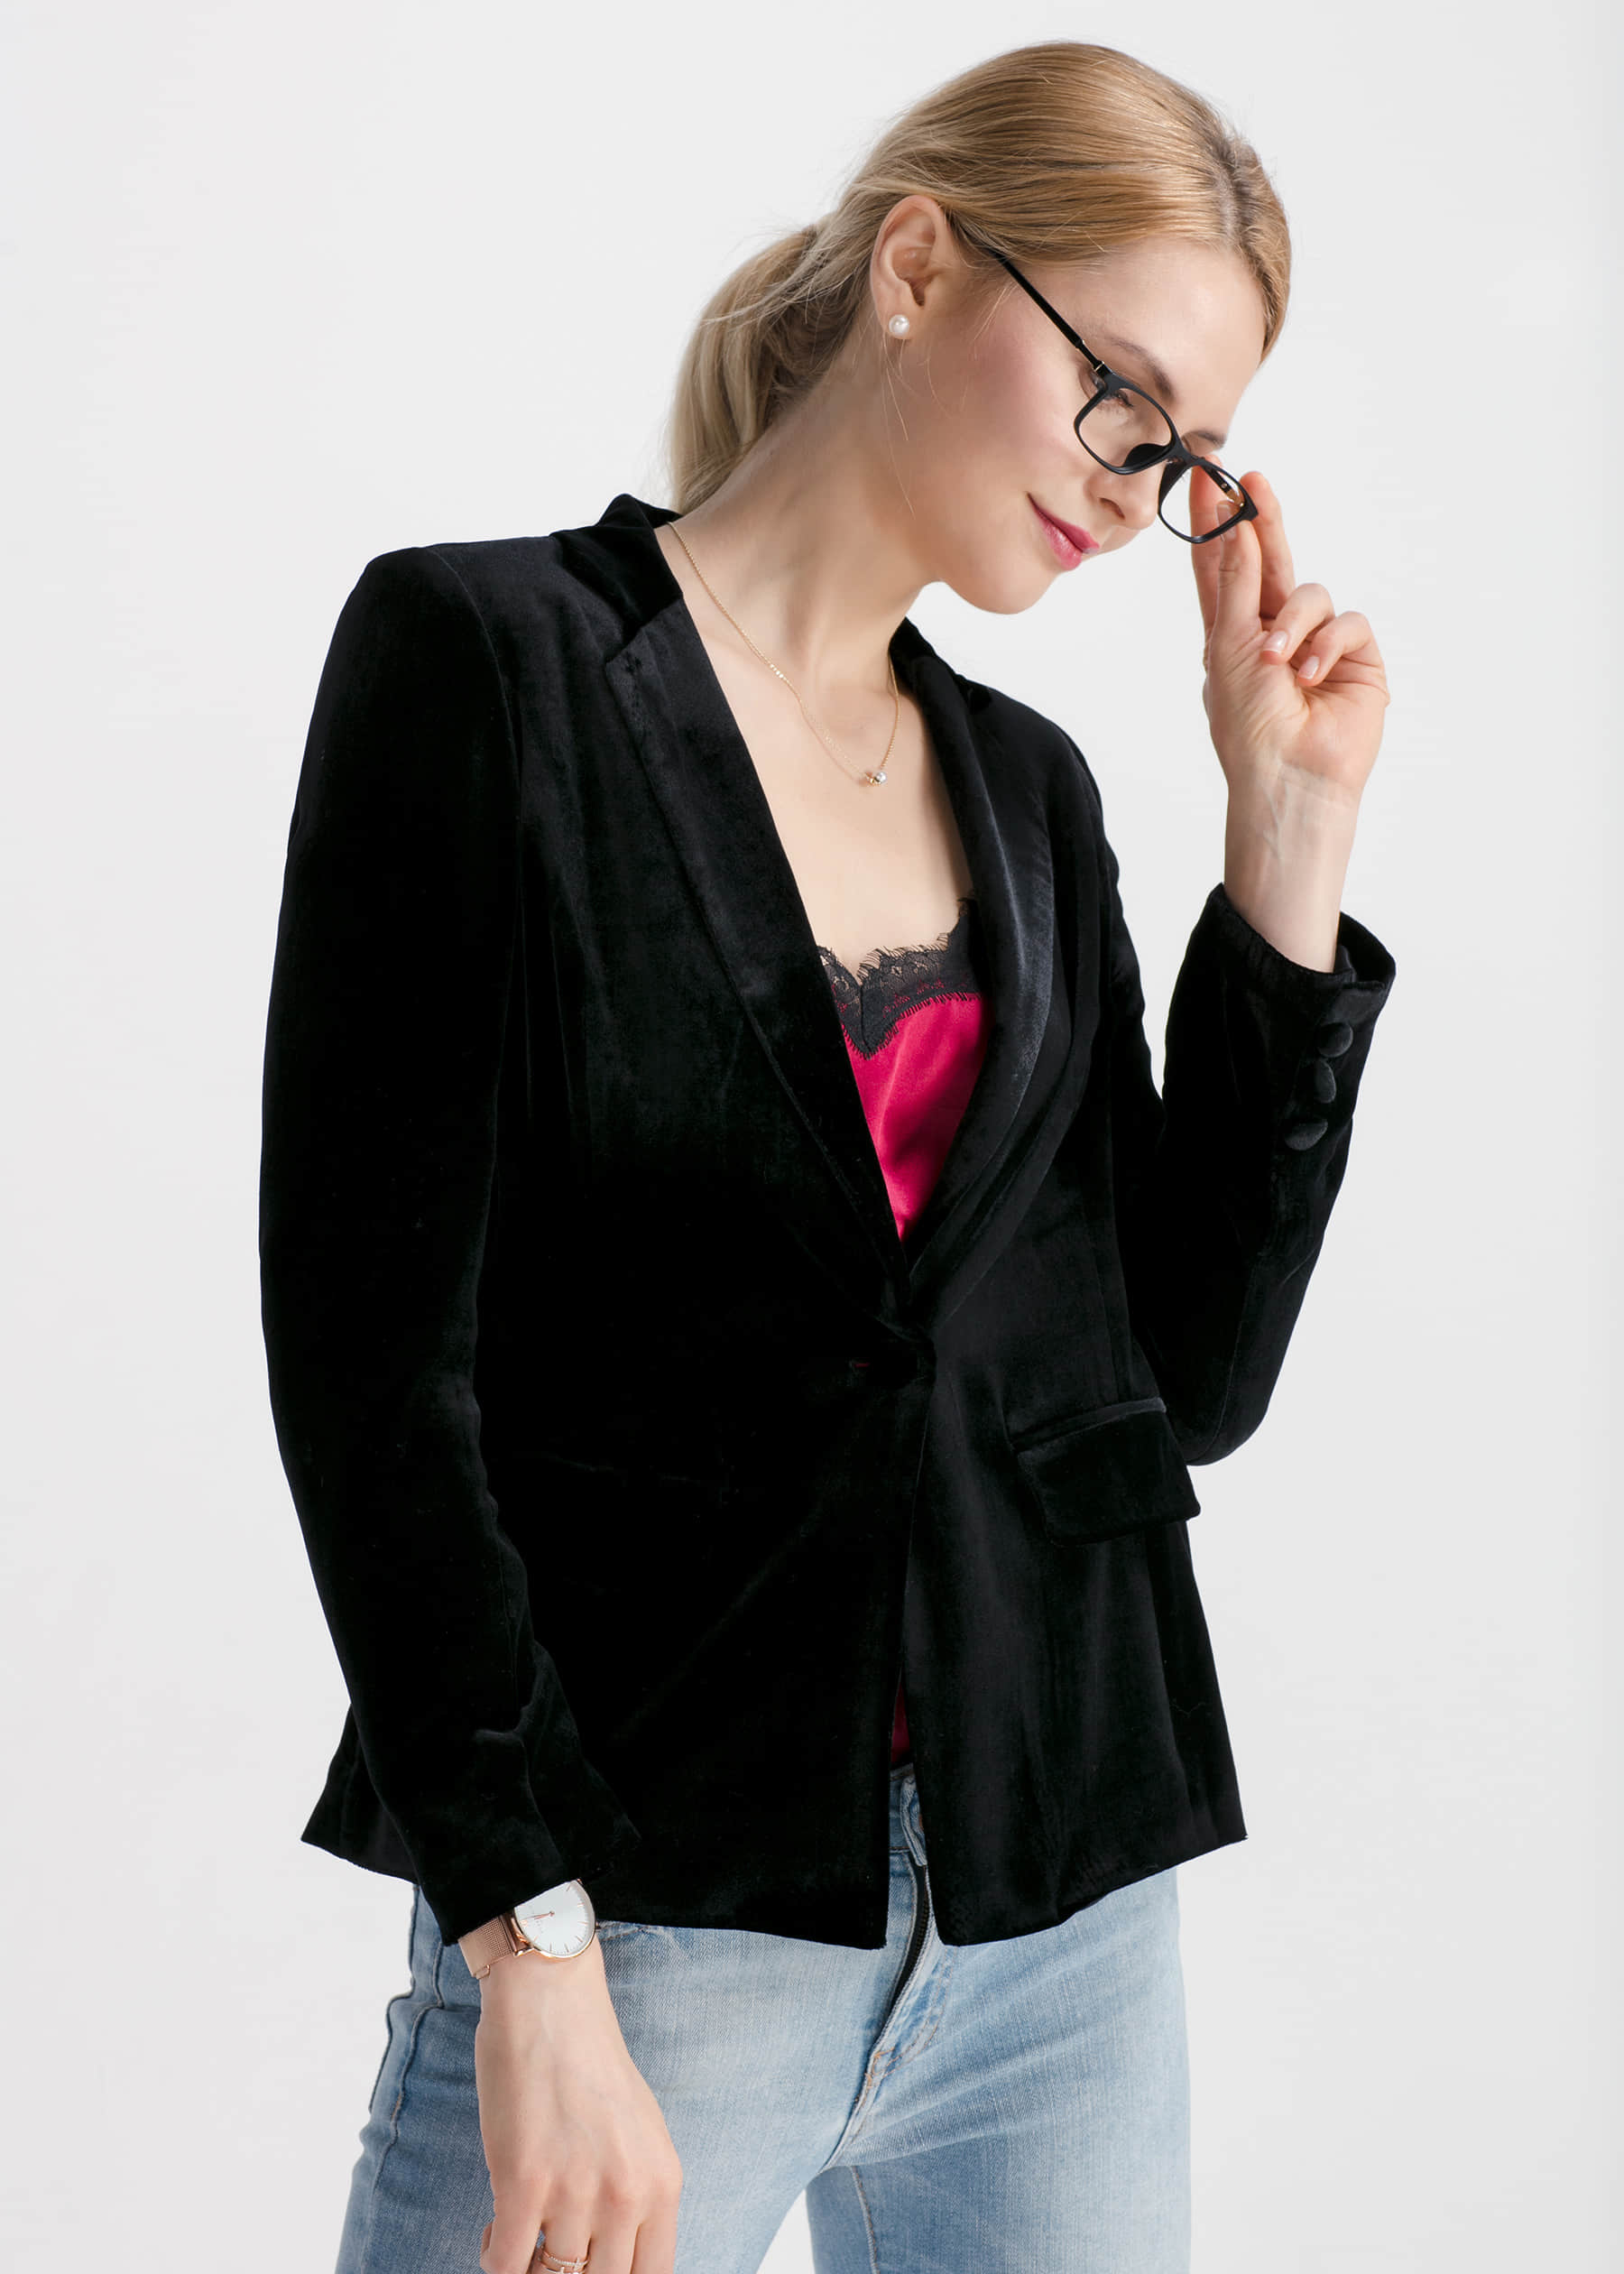 Waist Flattering Silk Velvet Blazer Hot Sale From Lilysilk